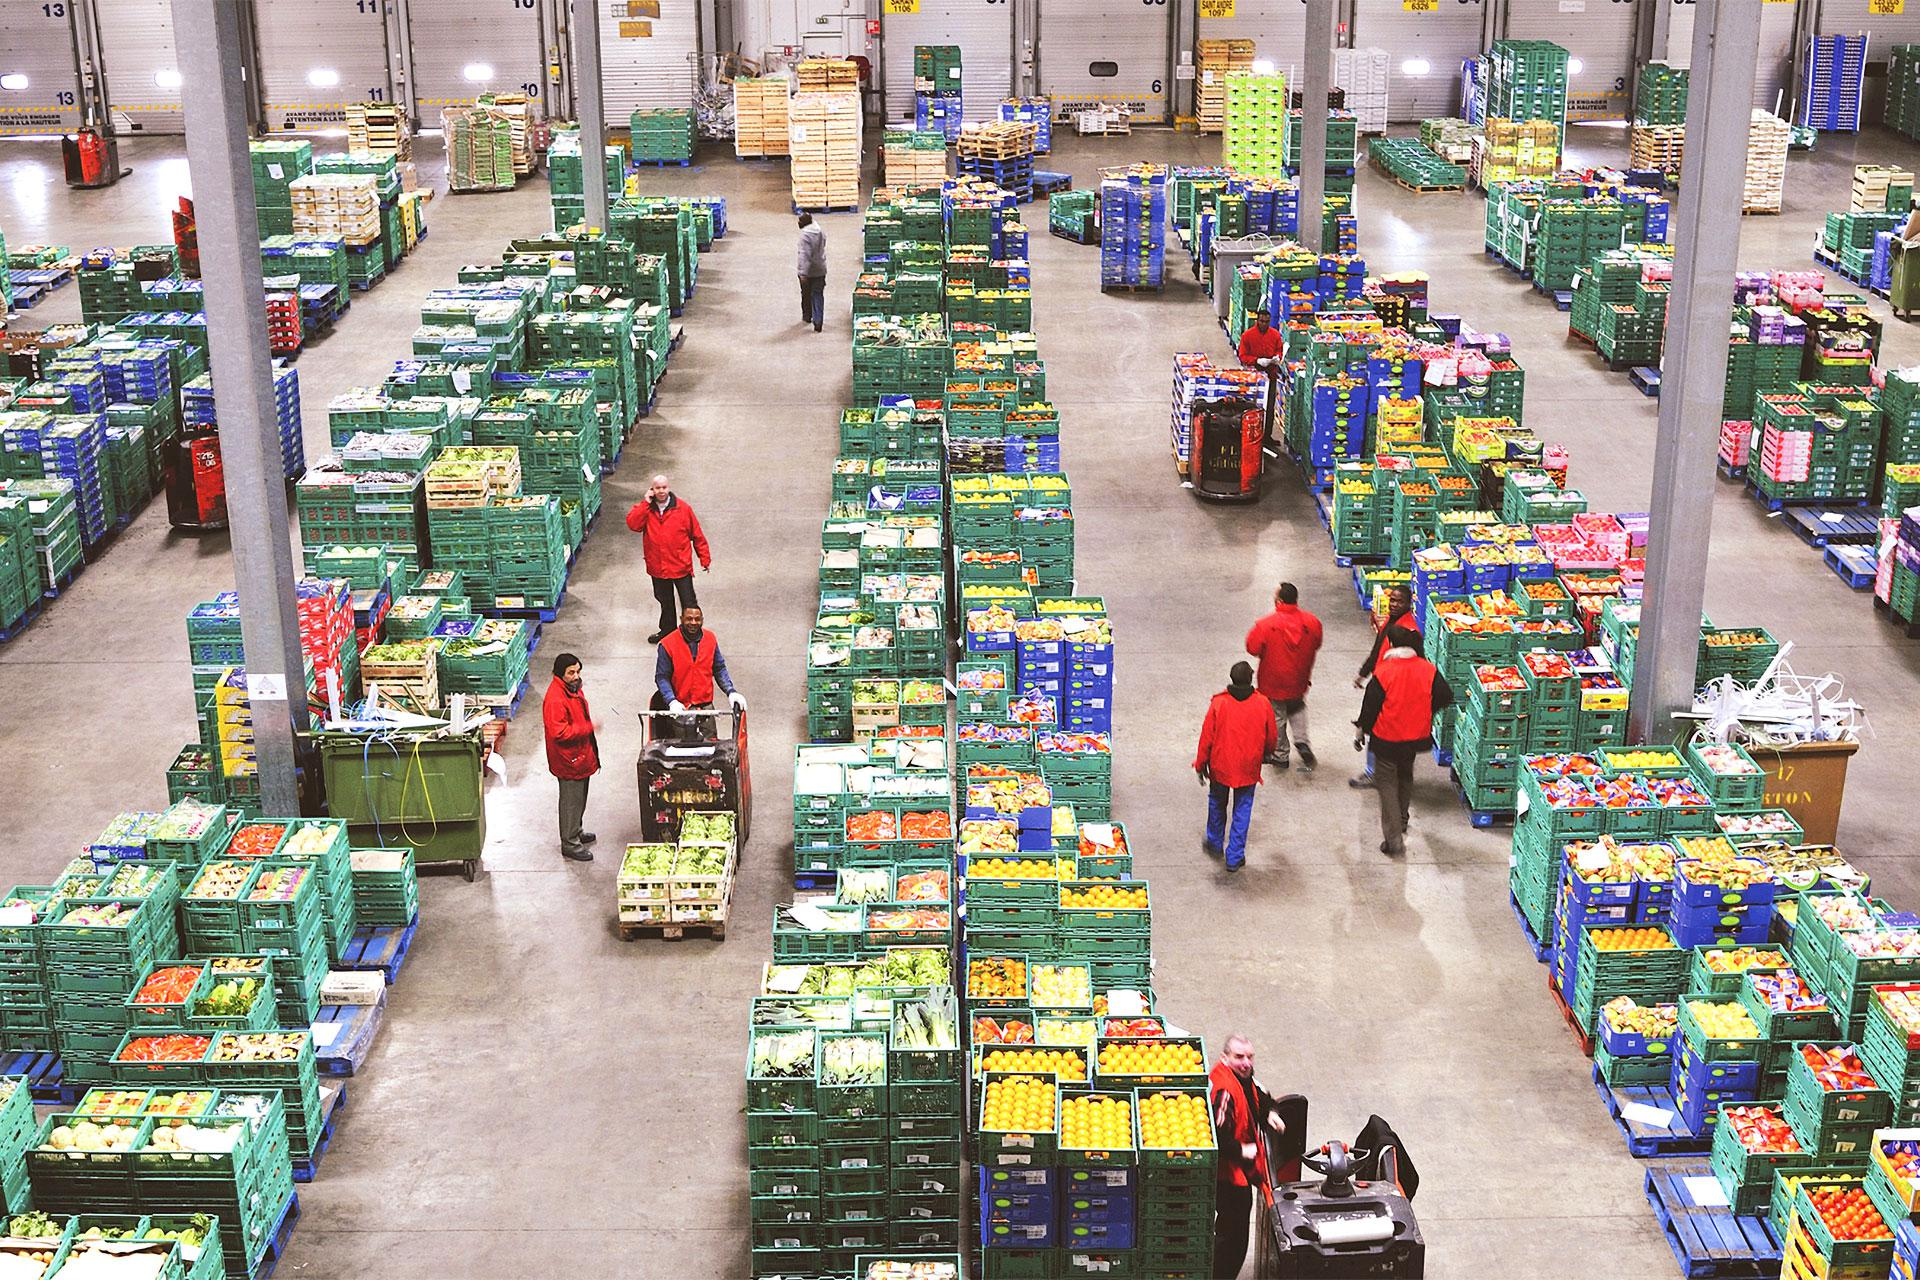 XPO Logistics employees at a food-grade distribution facility in the UK.